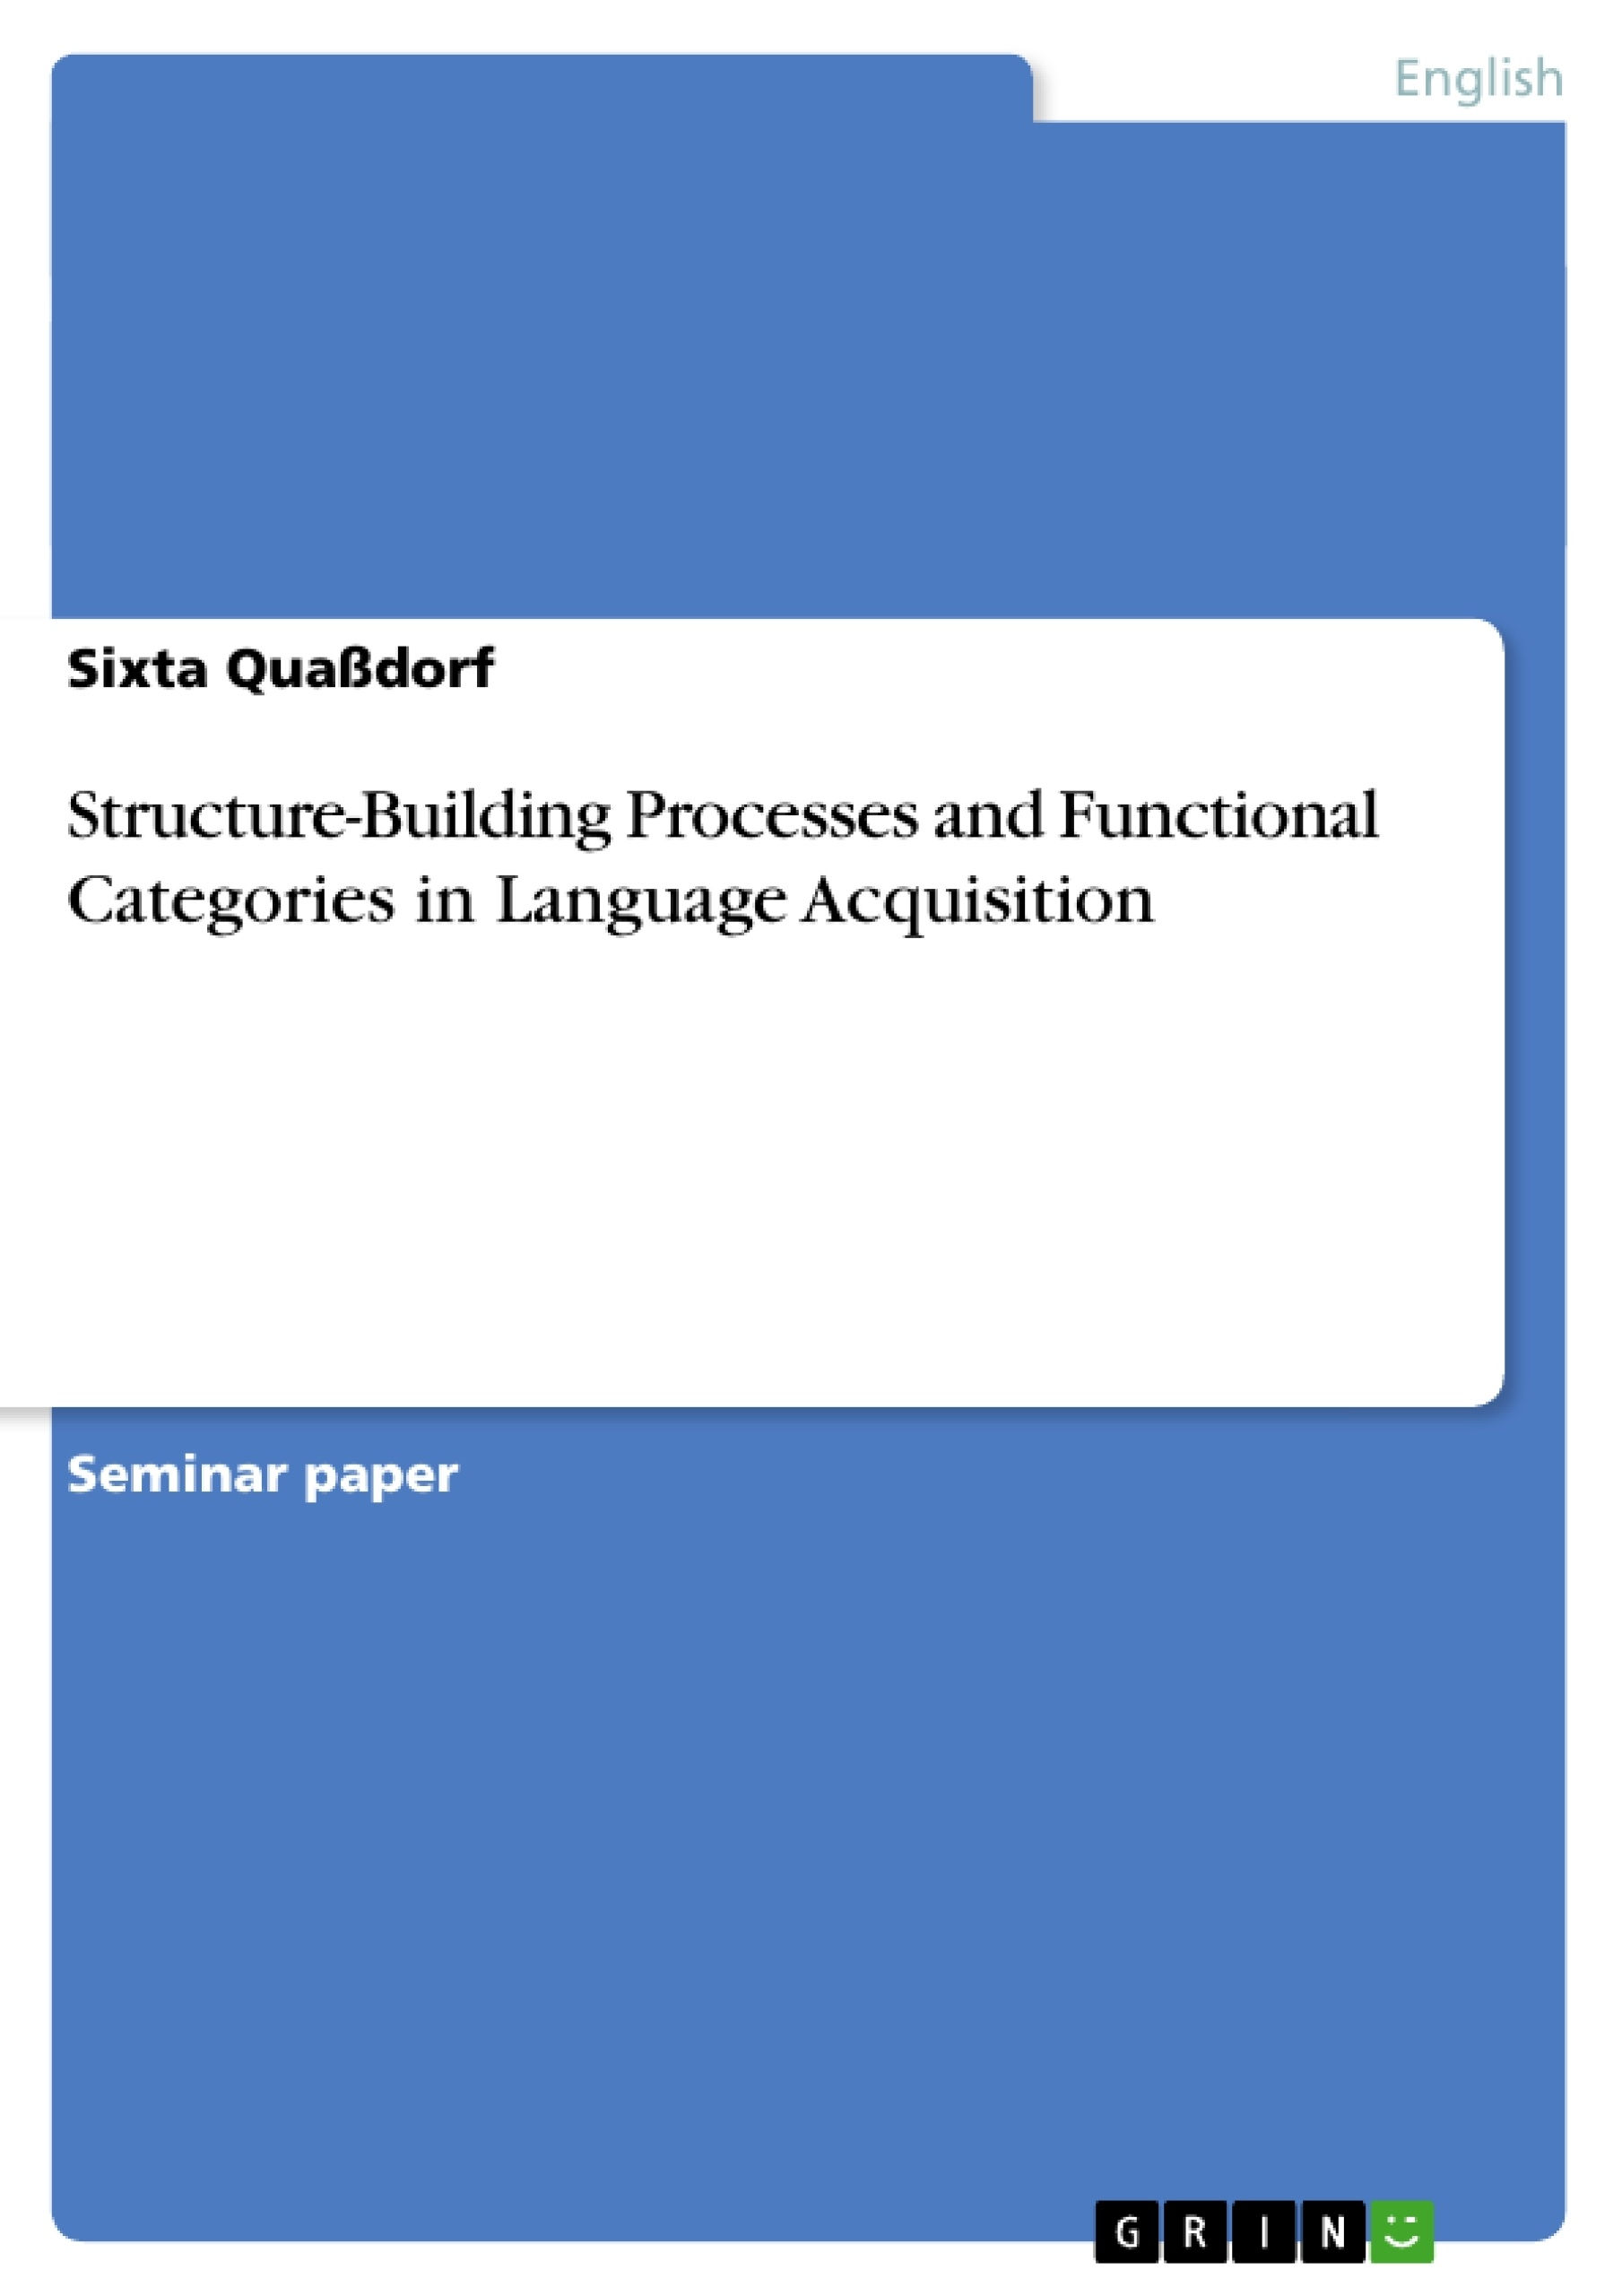 Title: Structure-Building Processes and Functional Categories in Language Acquisition